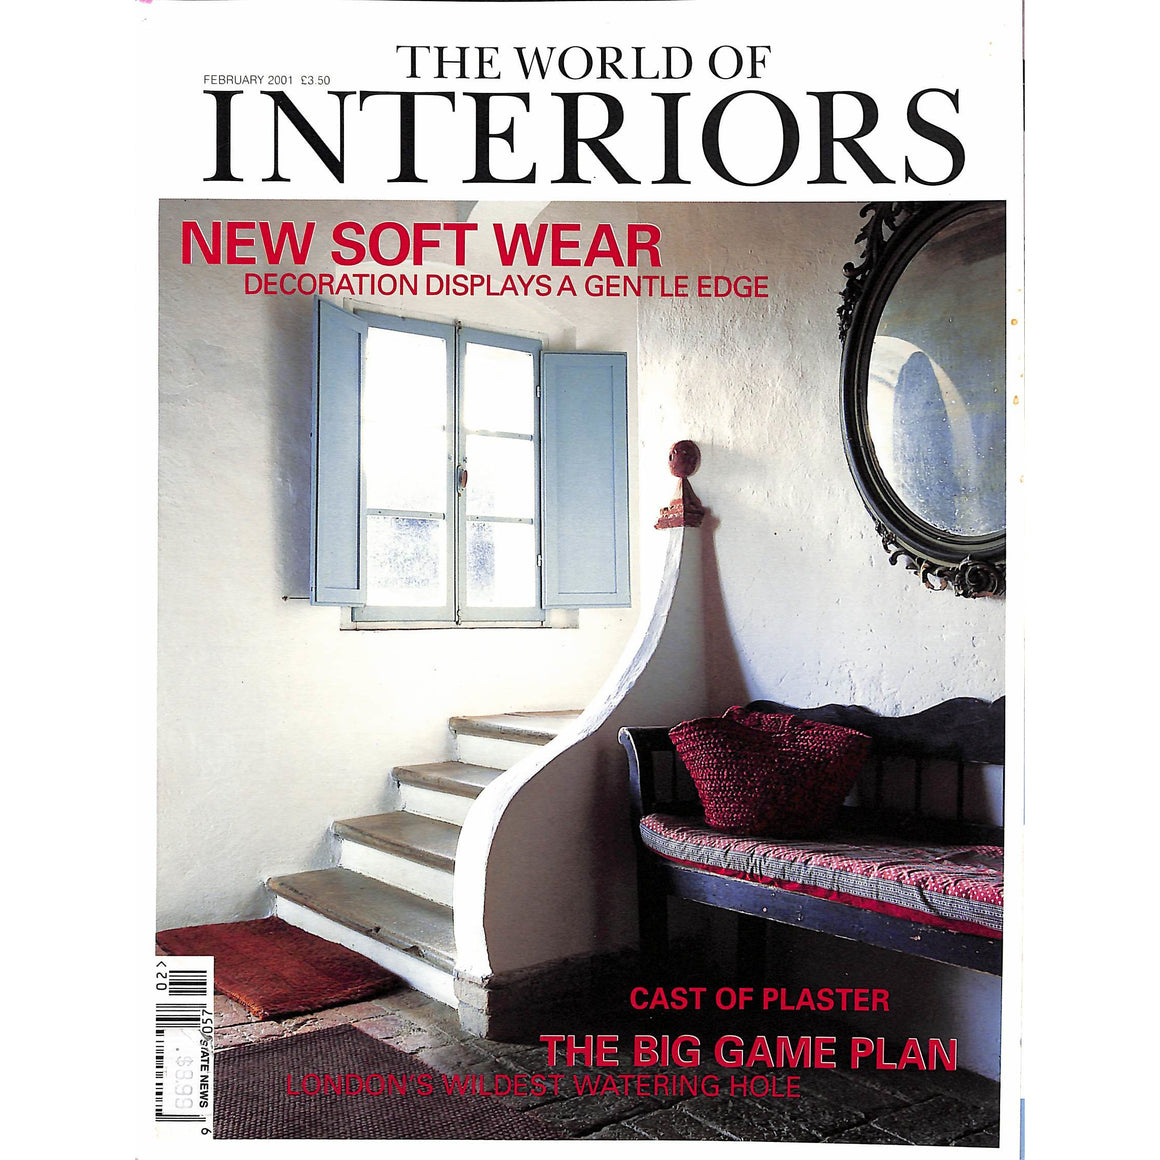 The World of Interiors February 2001